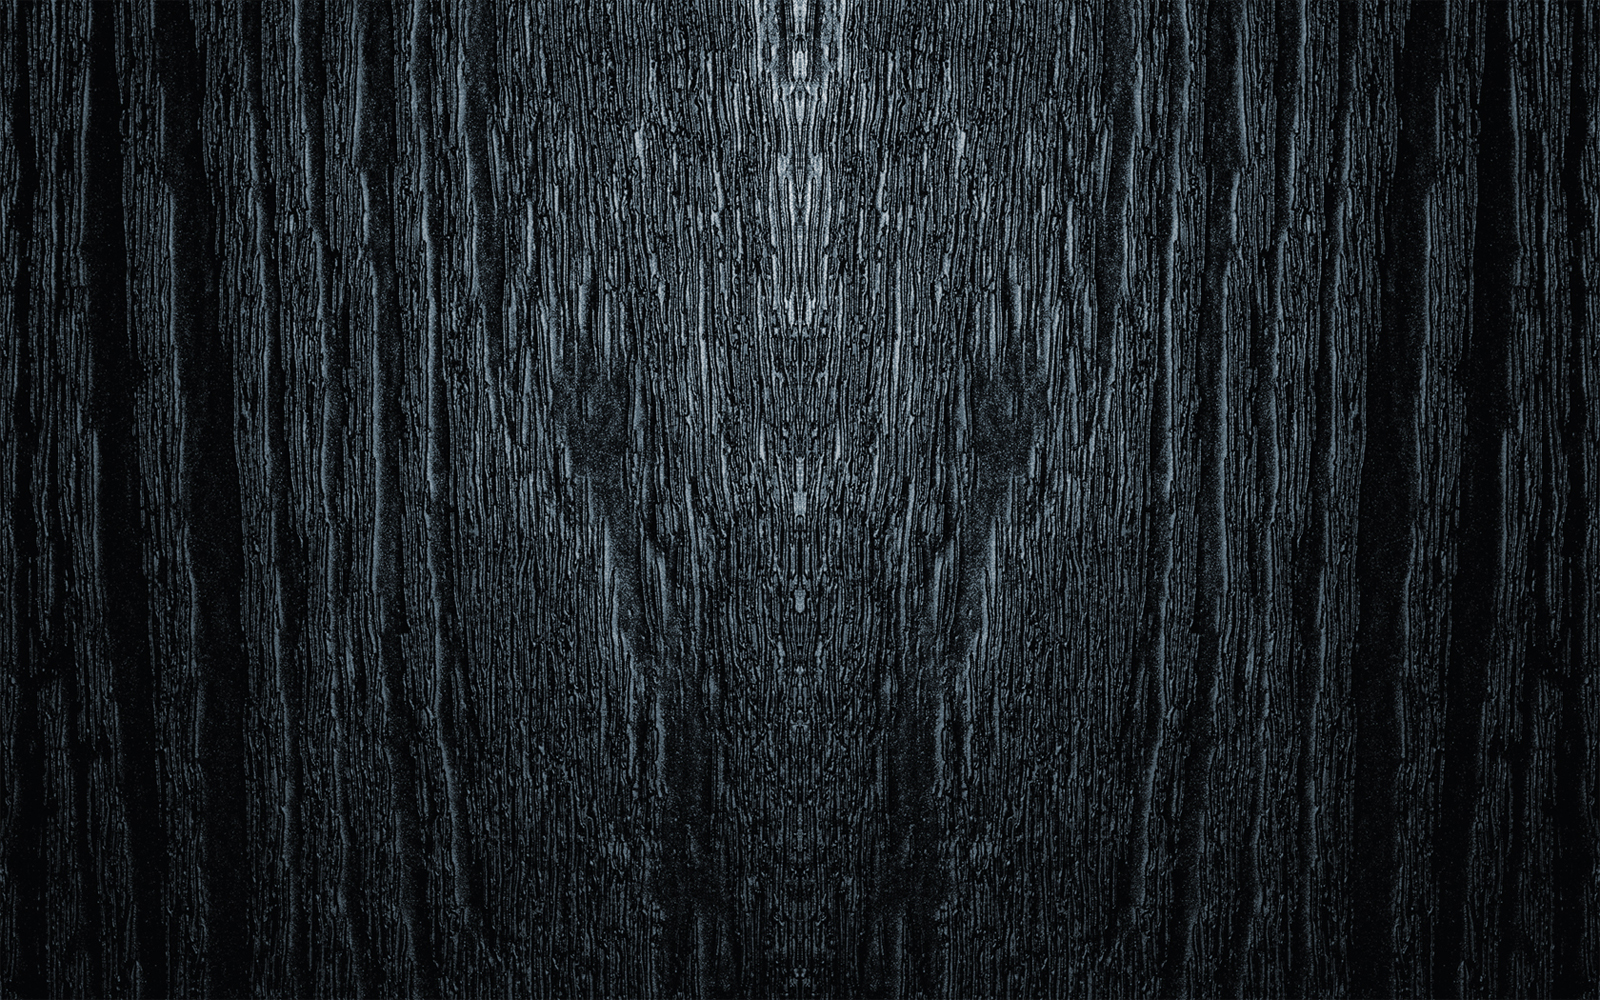 Dark Wood clipart night background Wood x 1000 Full Backgrounds